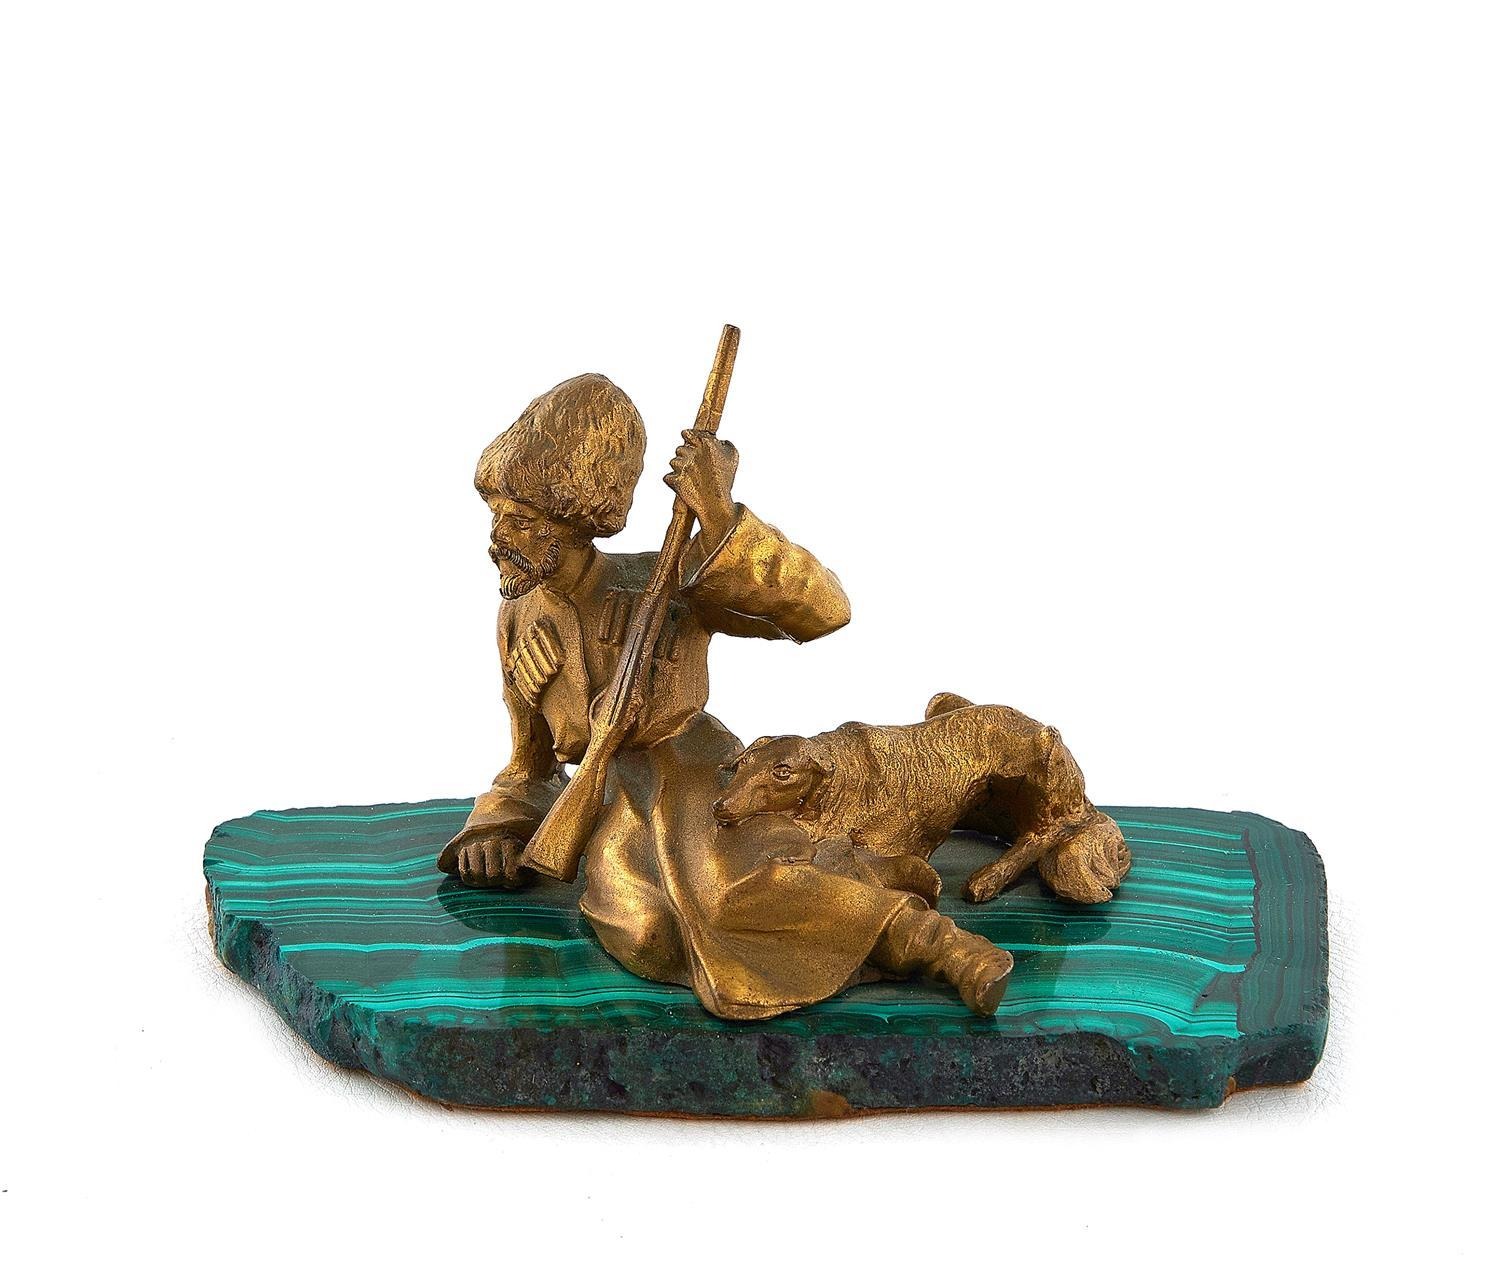 Russian gilt-bronze and malachite sculpture